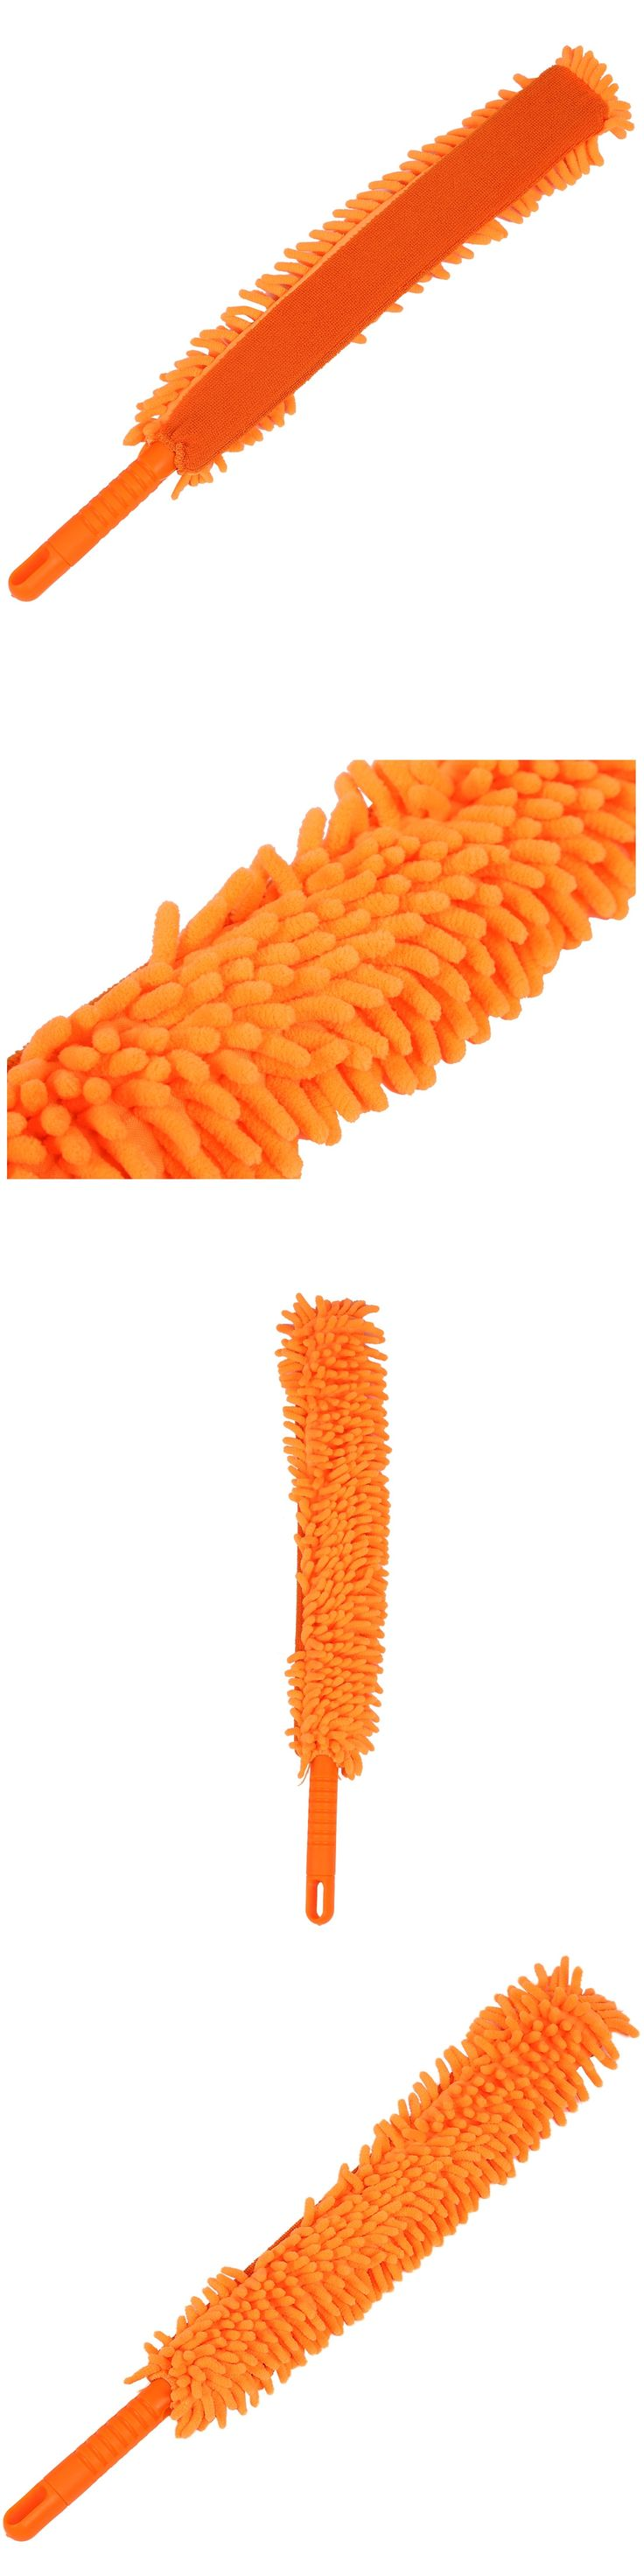 ALIM  Flexible Chenille Bendable minifiber Cleaning Duster Brush Random Color